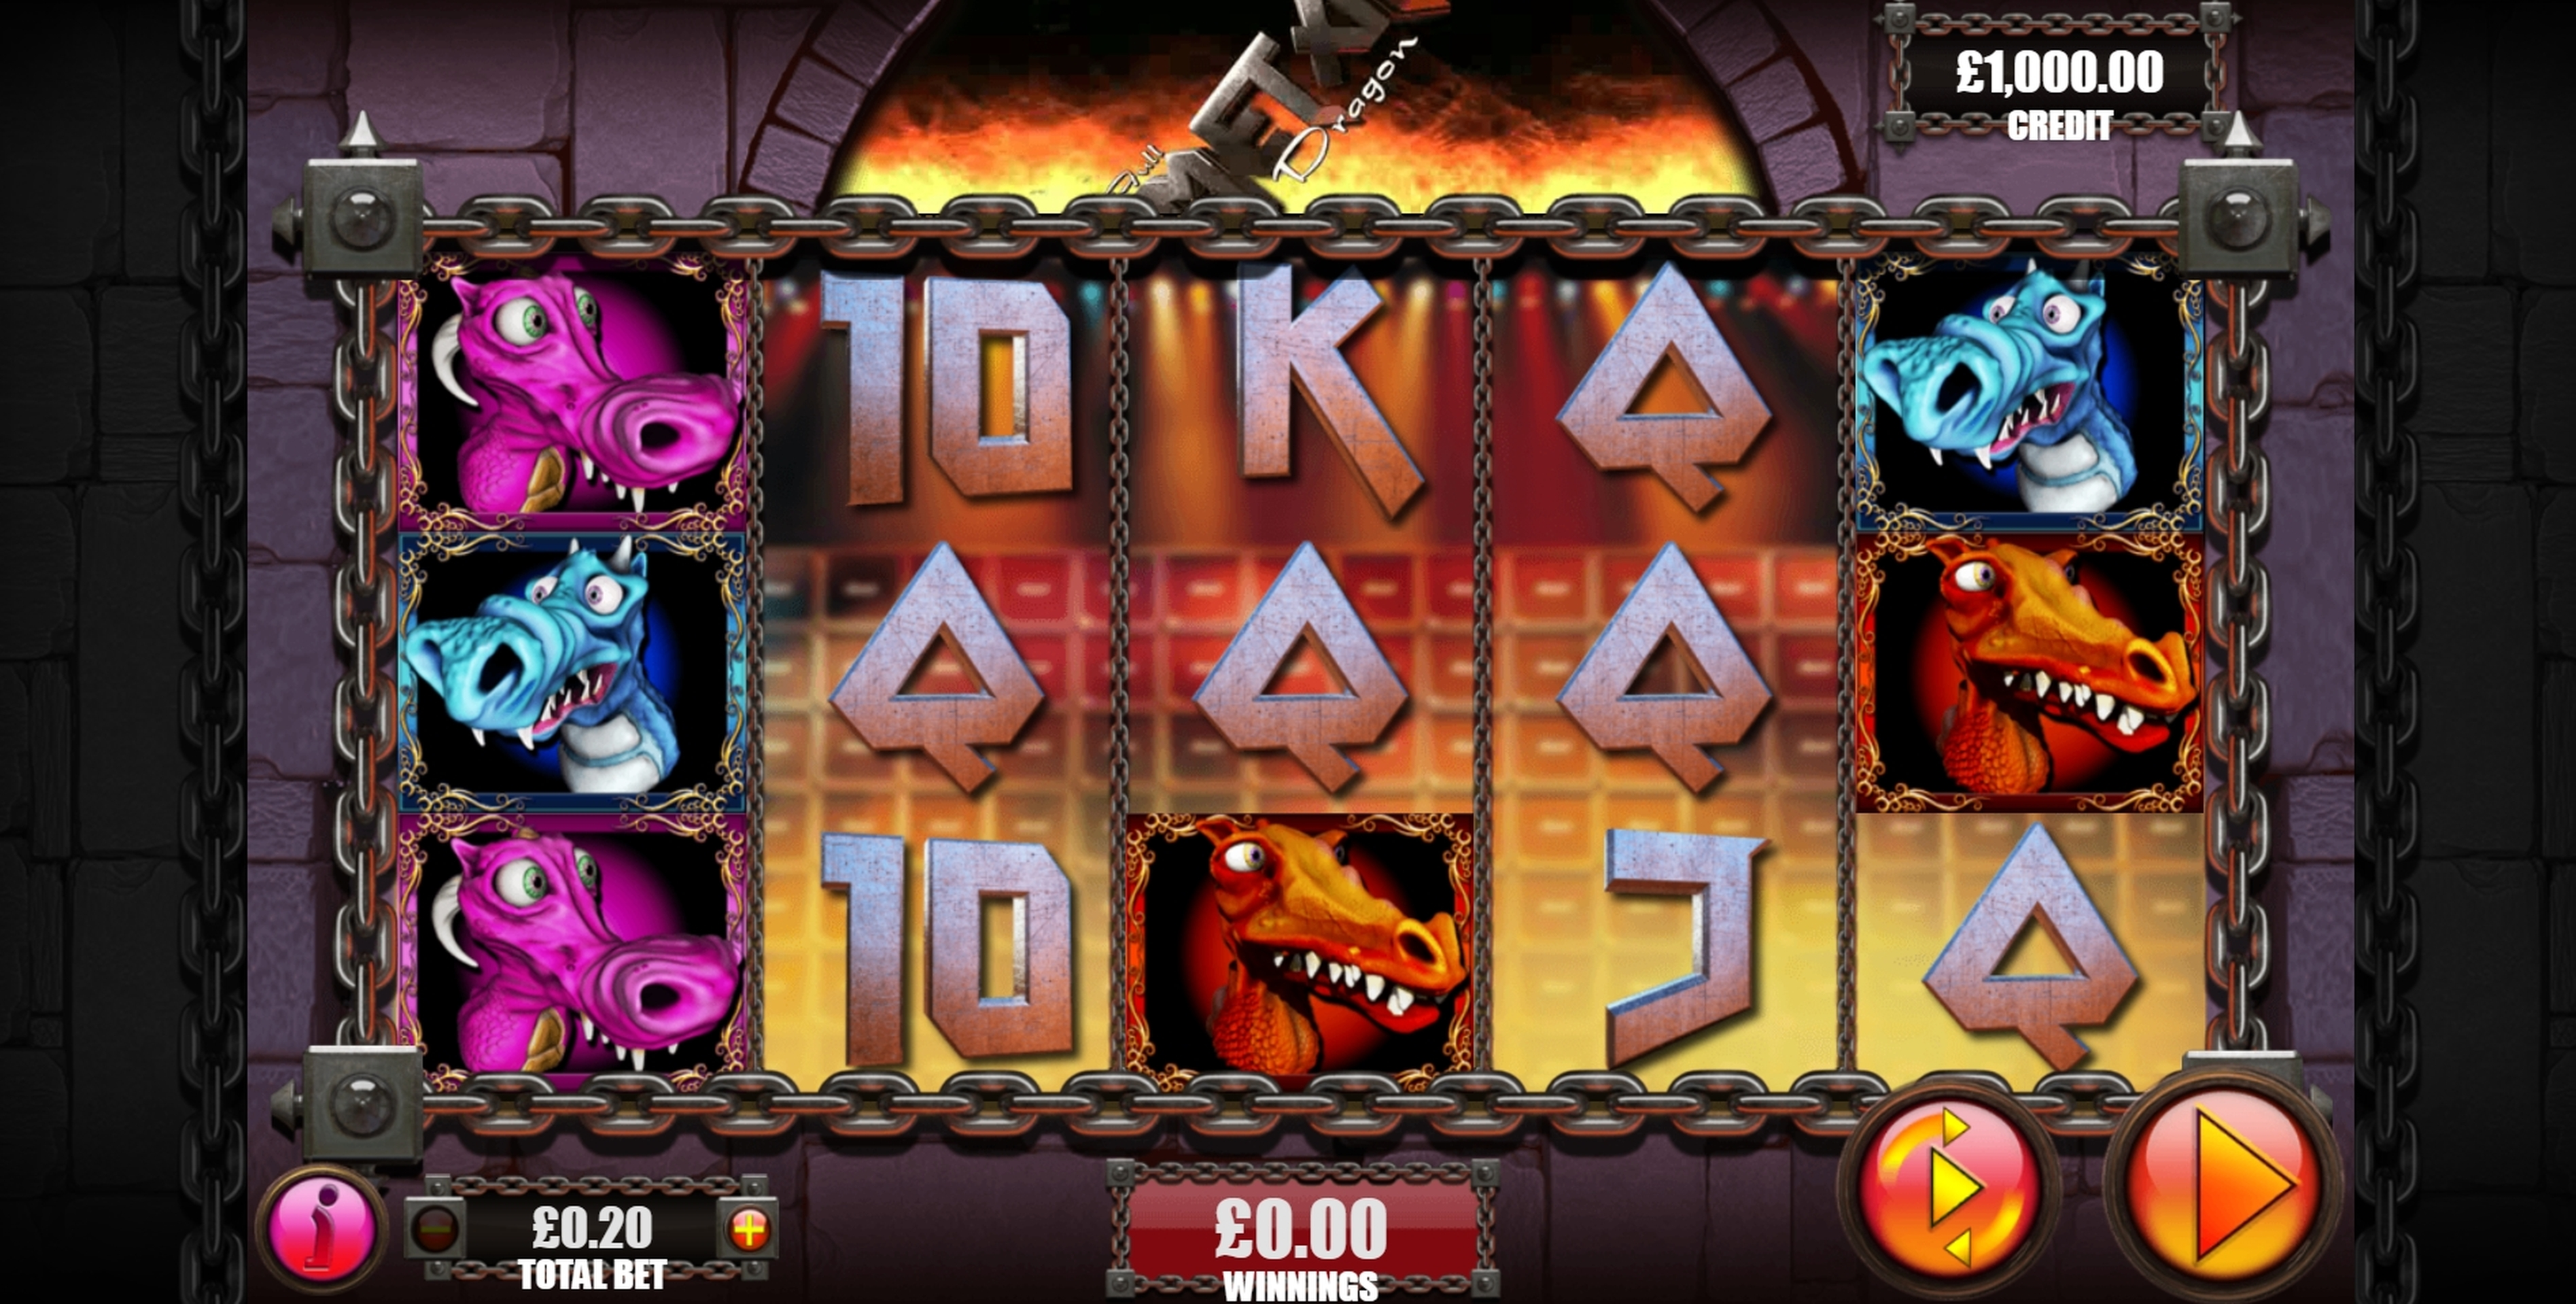 Reels in Full Metal Dragon Slot Game by Games Warehouse